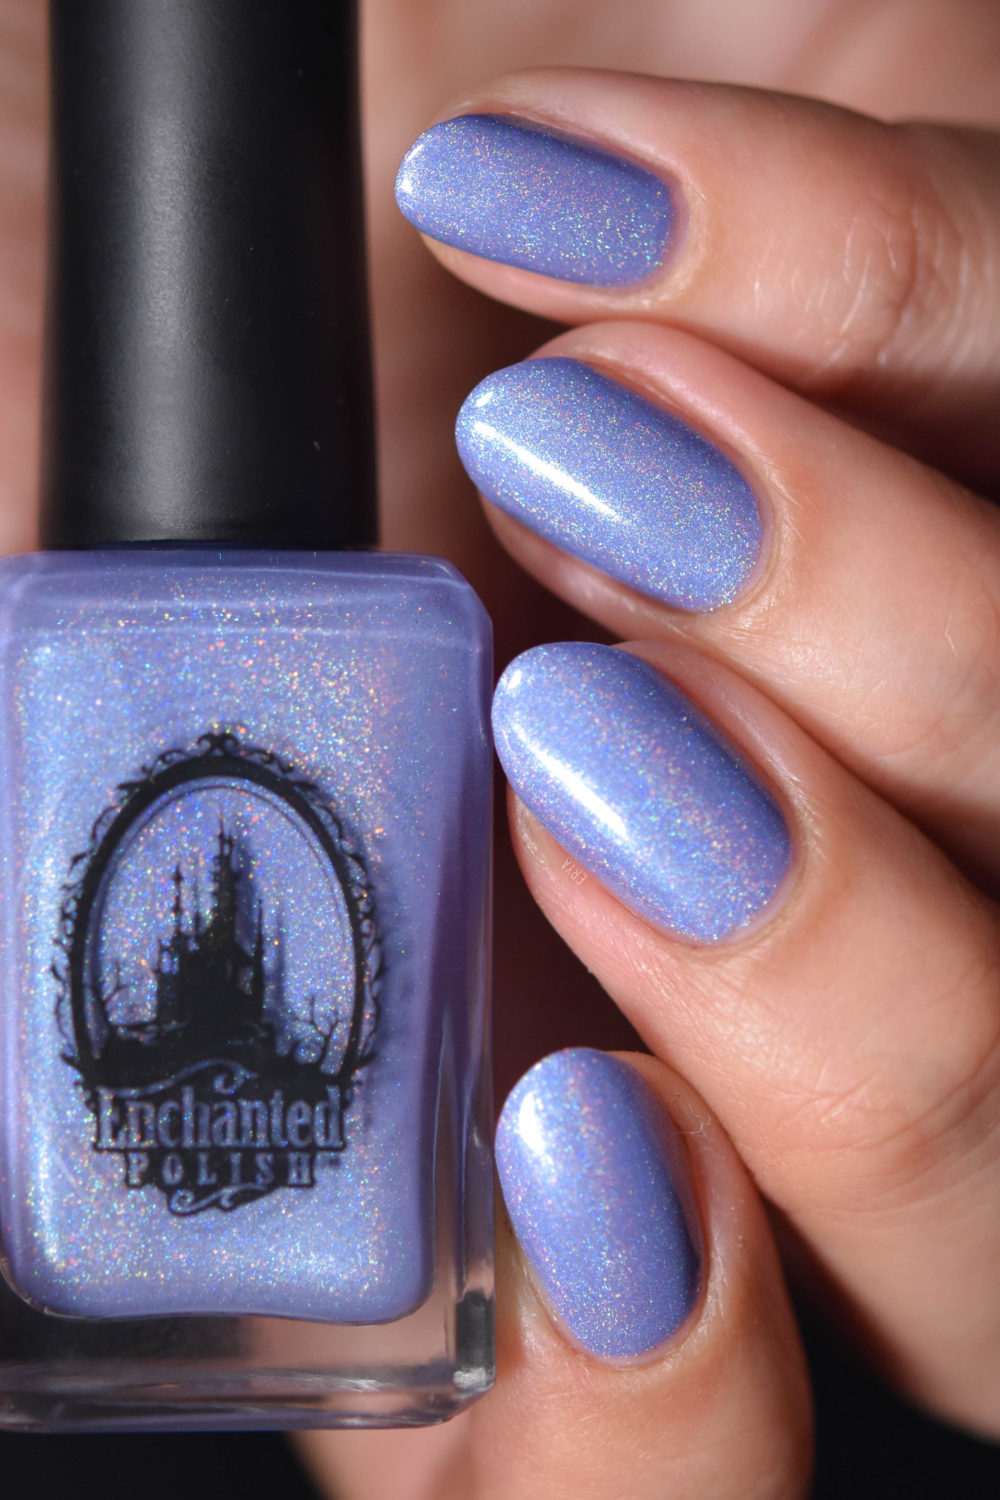 Enchanted_Polish-Heliotrope-7